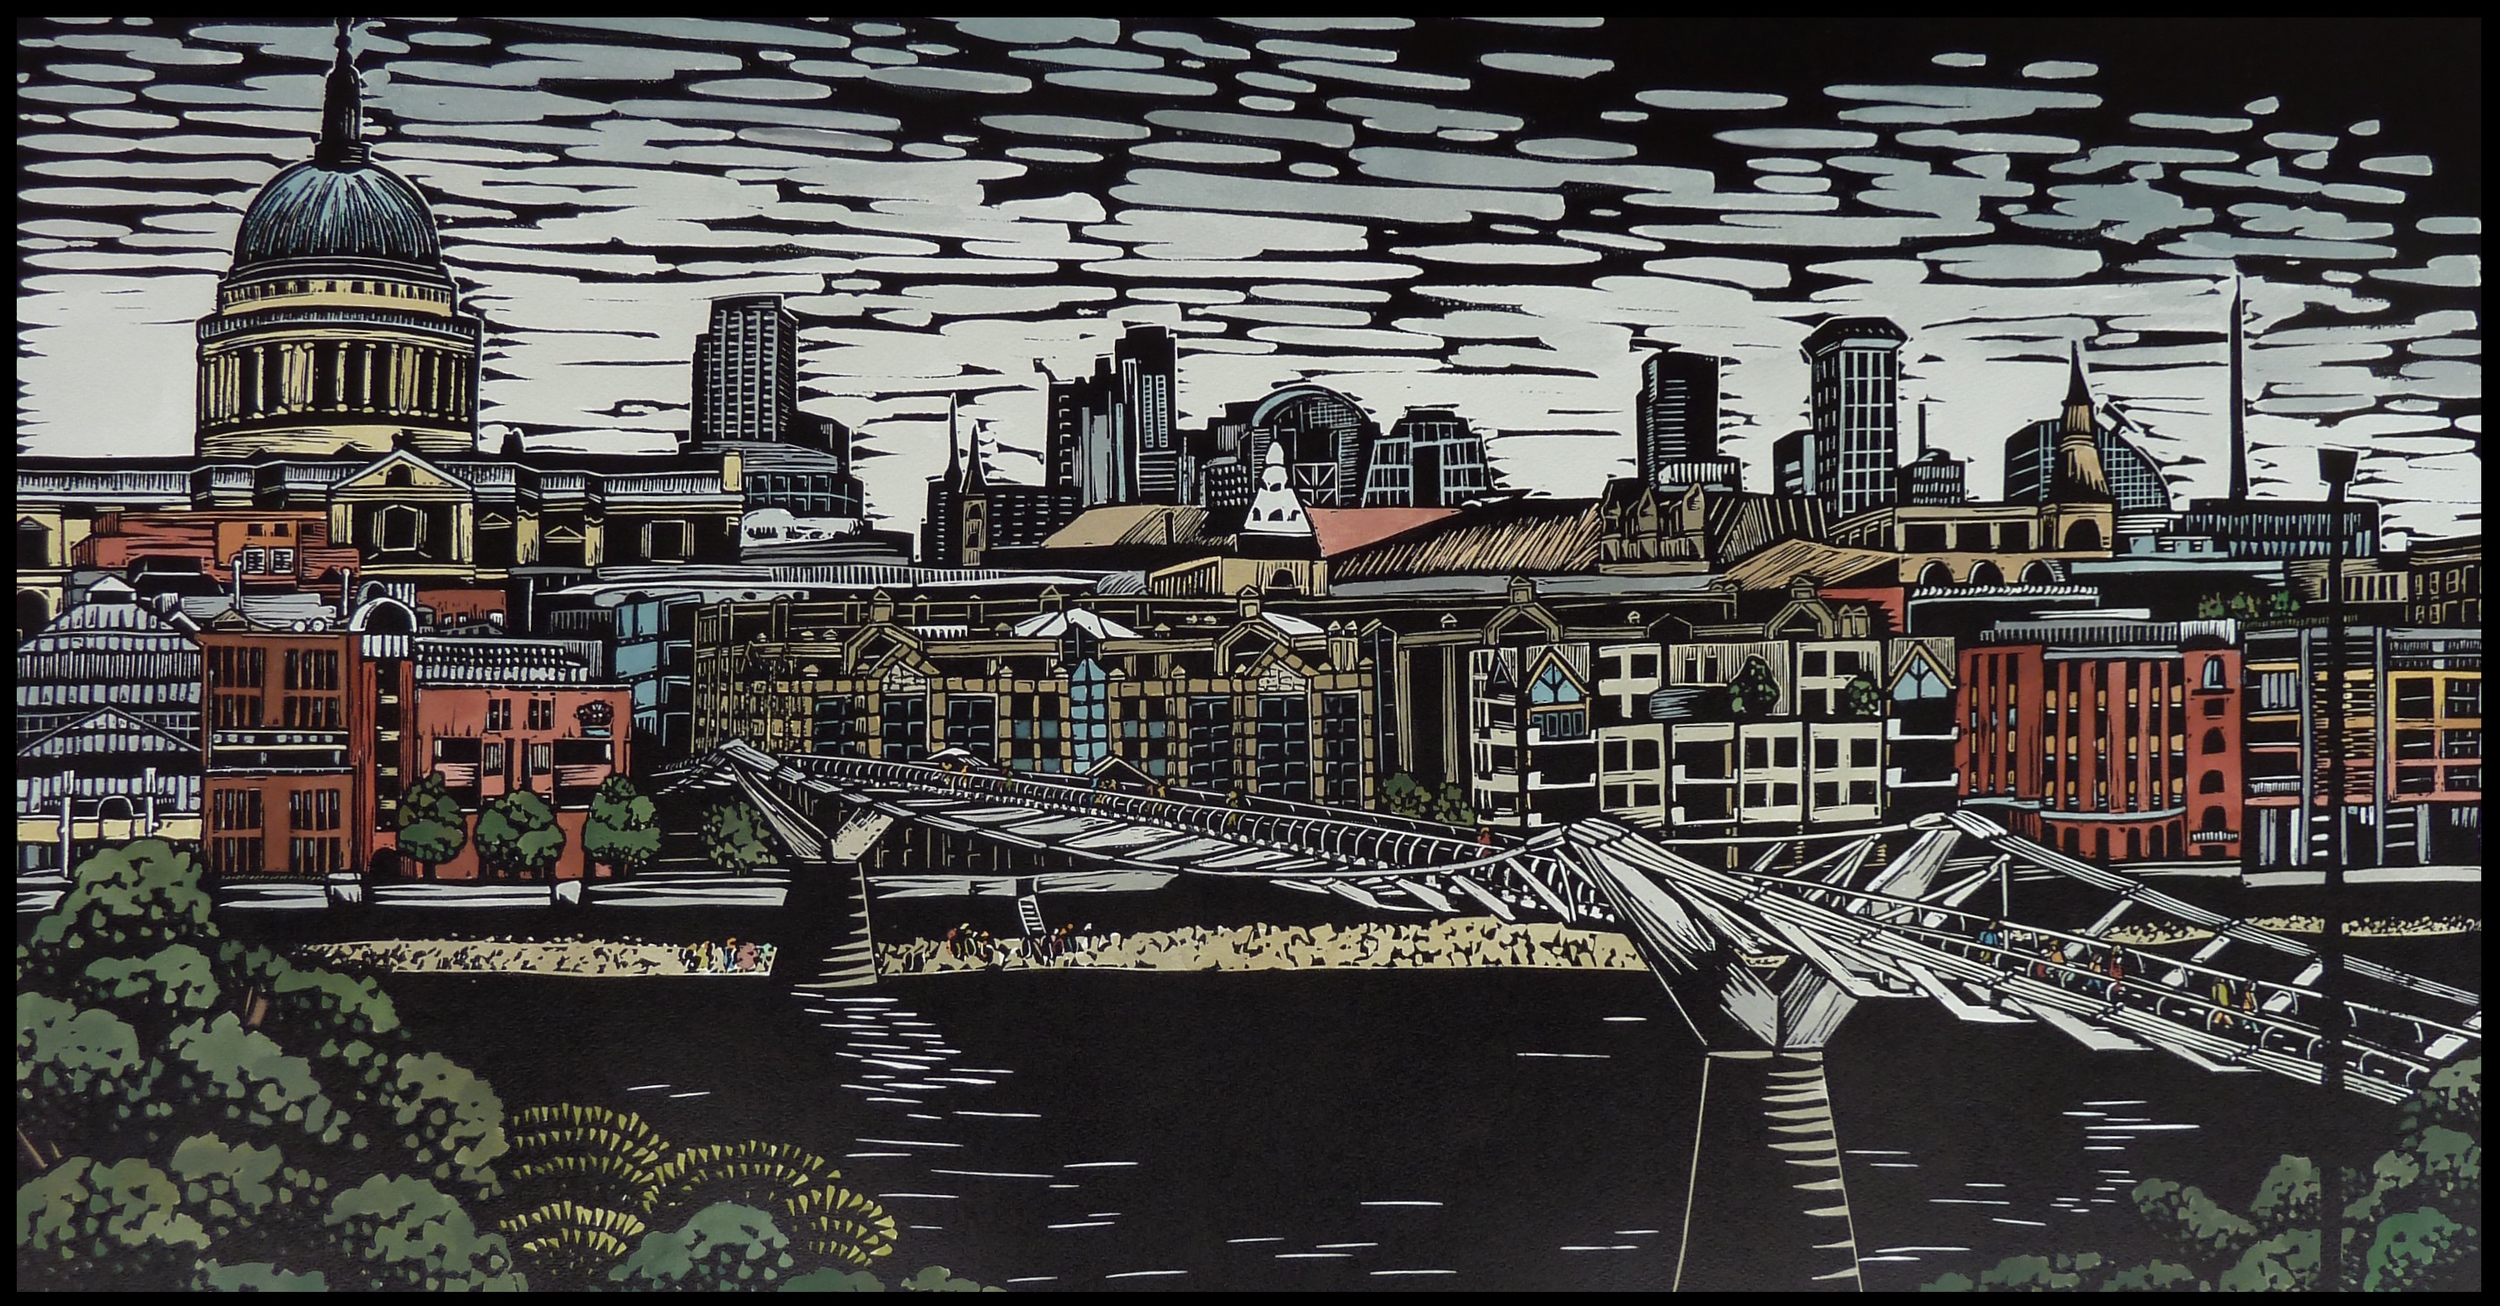 London City: Across the Millennium Bridge   Hand coloured linocut, 2014  Edition of 4  Image size: 46 cm x 86 cm  Paper size: 70 cm x 100 cm  SOLD OUT   London City: Across the Millennium Bridge  reflects the history and complexity of the City of London. The Thames continues to flow through even as new structures are added: a constant in an ever evolving cityscape.